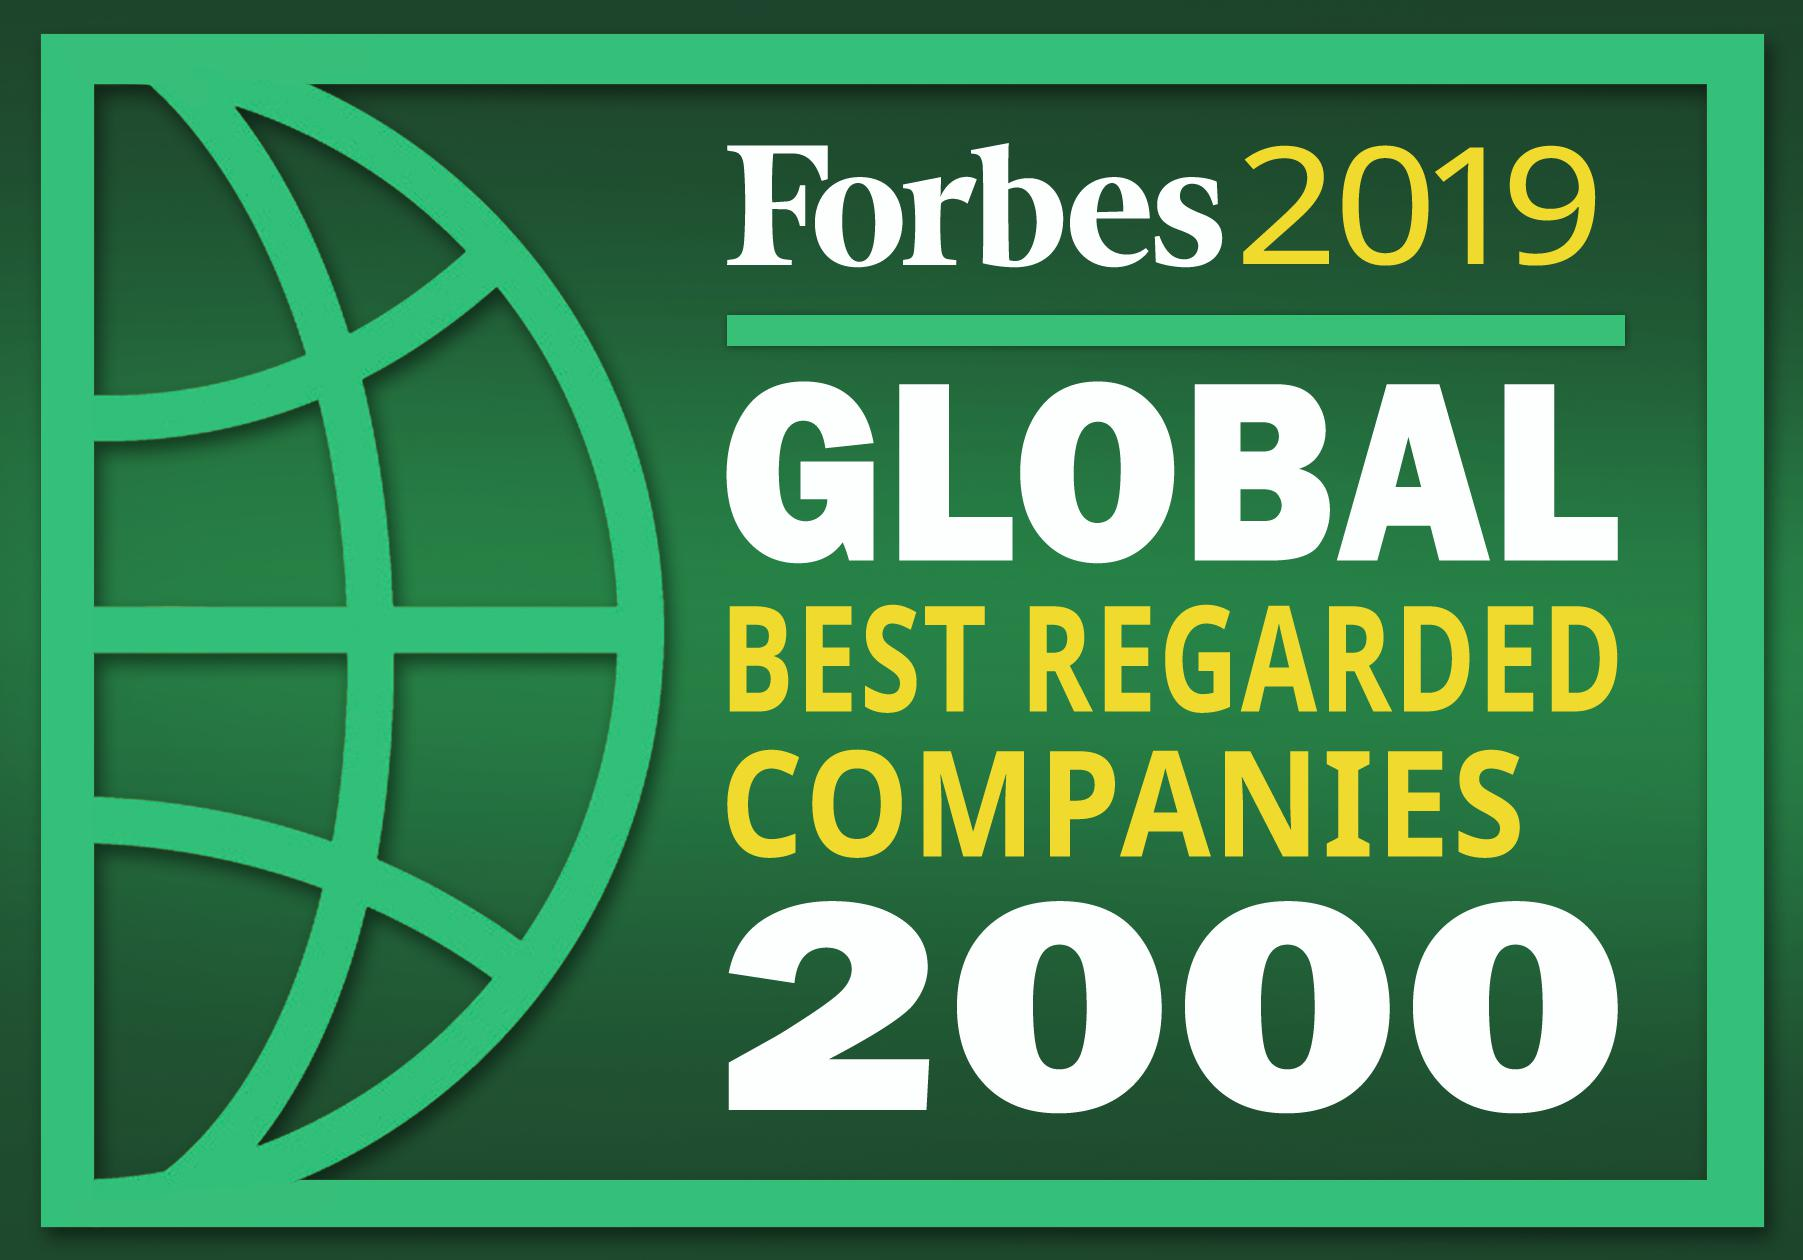 Global 2000: The World's Best Regarded Companies 2019